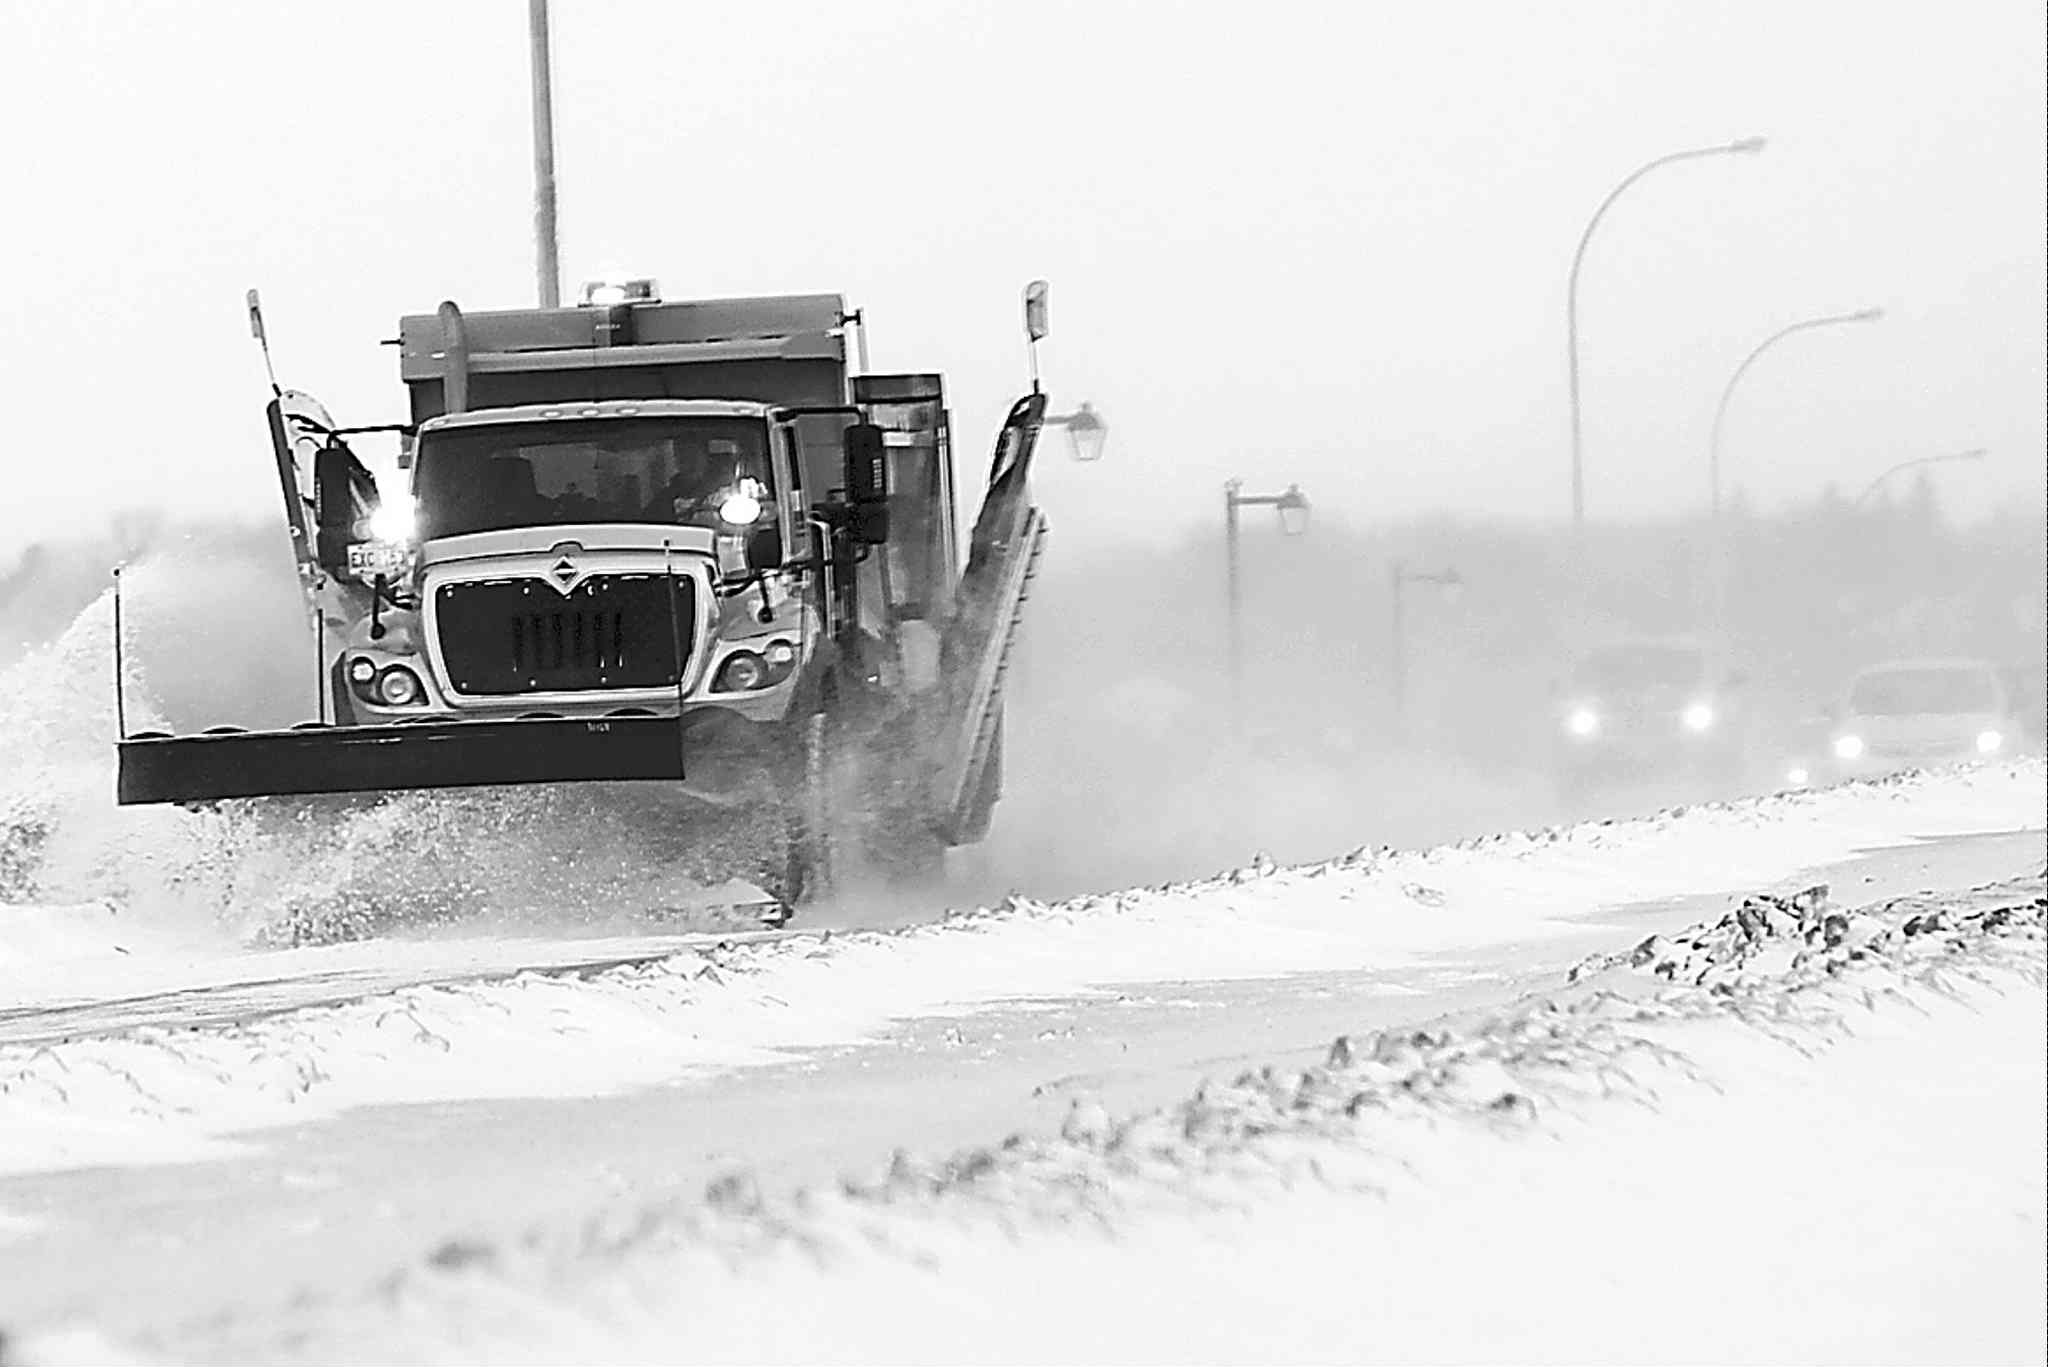 Snowfall has not forced schools in Winnipeg or northern centres to close so far this winter.